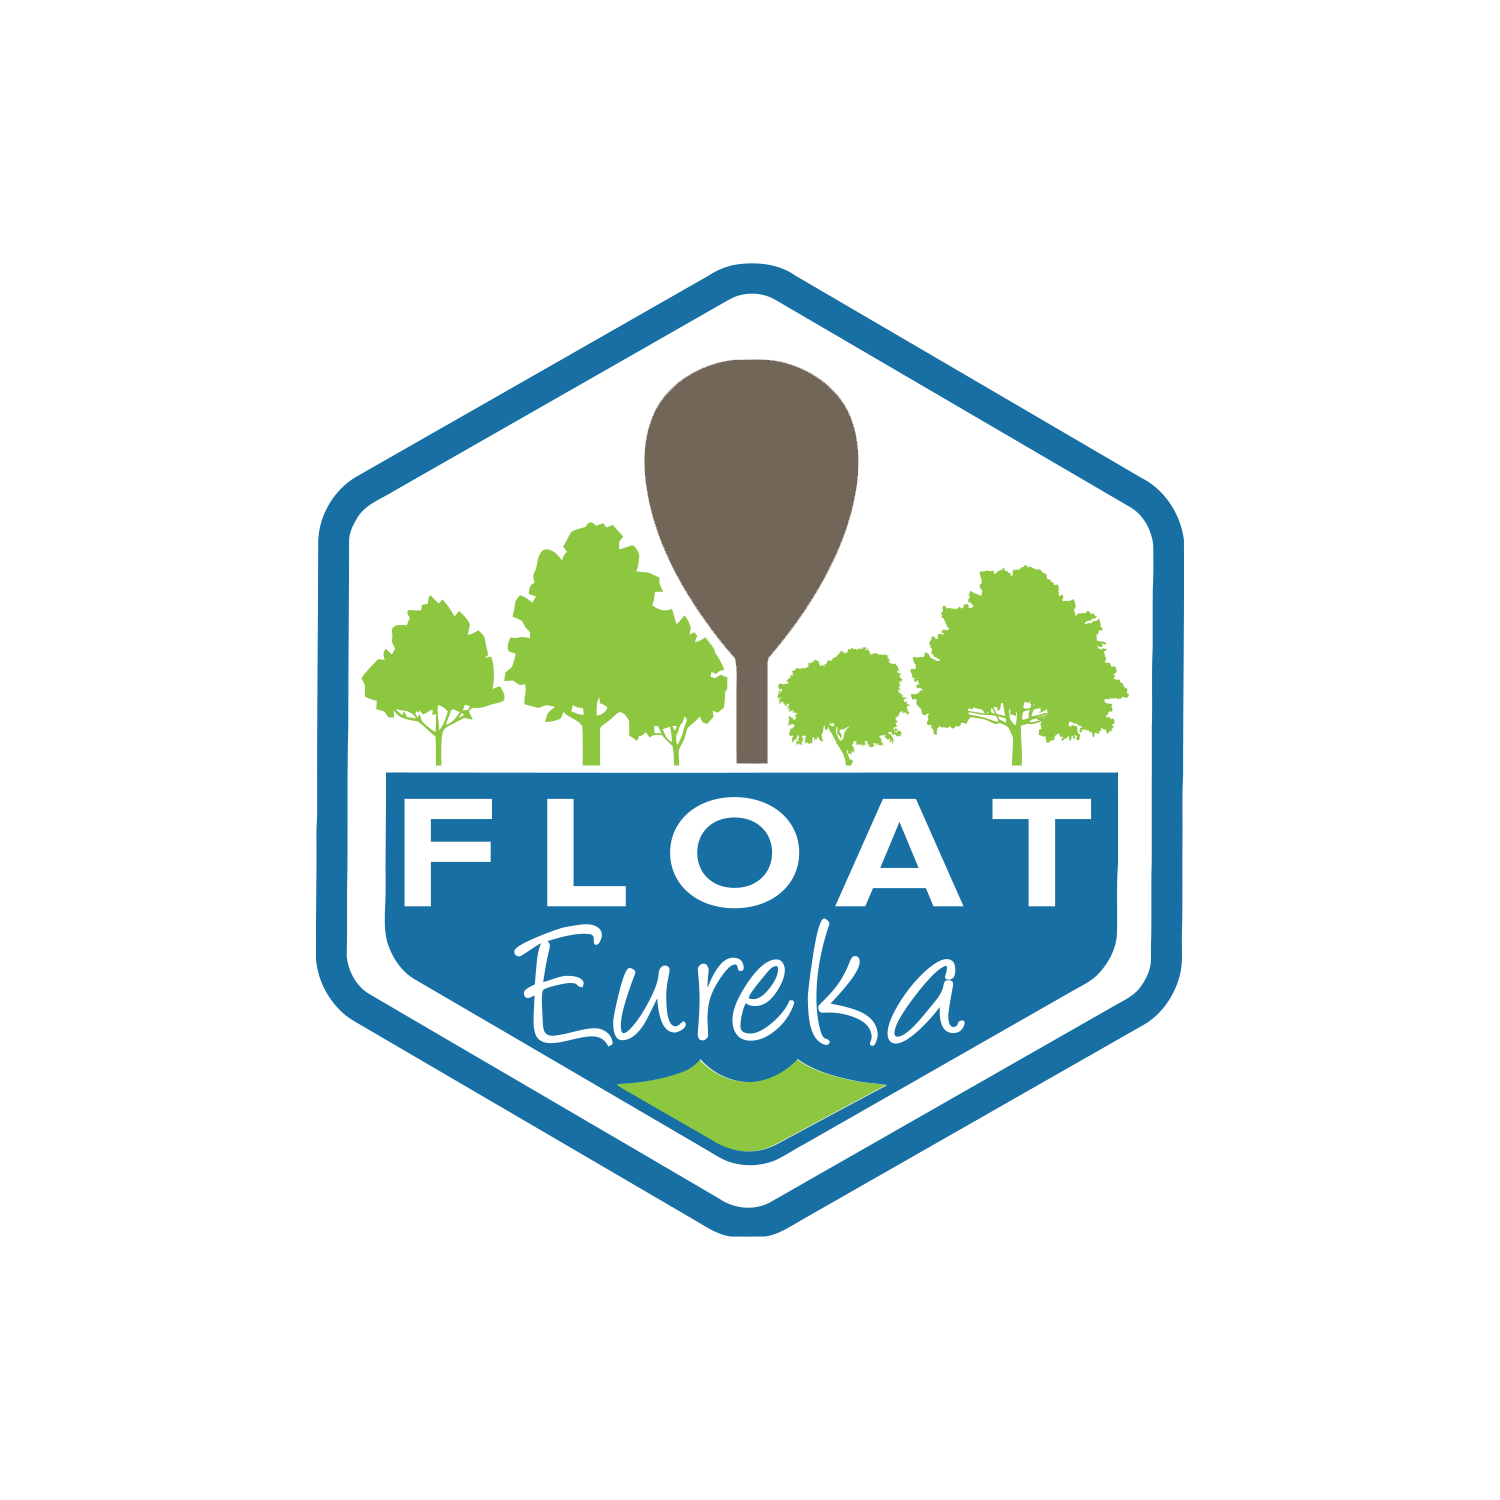 War Eagle Creek — Float Eureka: Choose your adventure